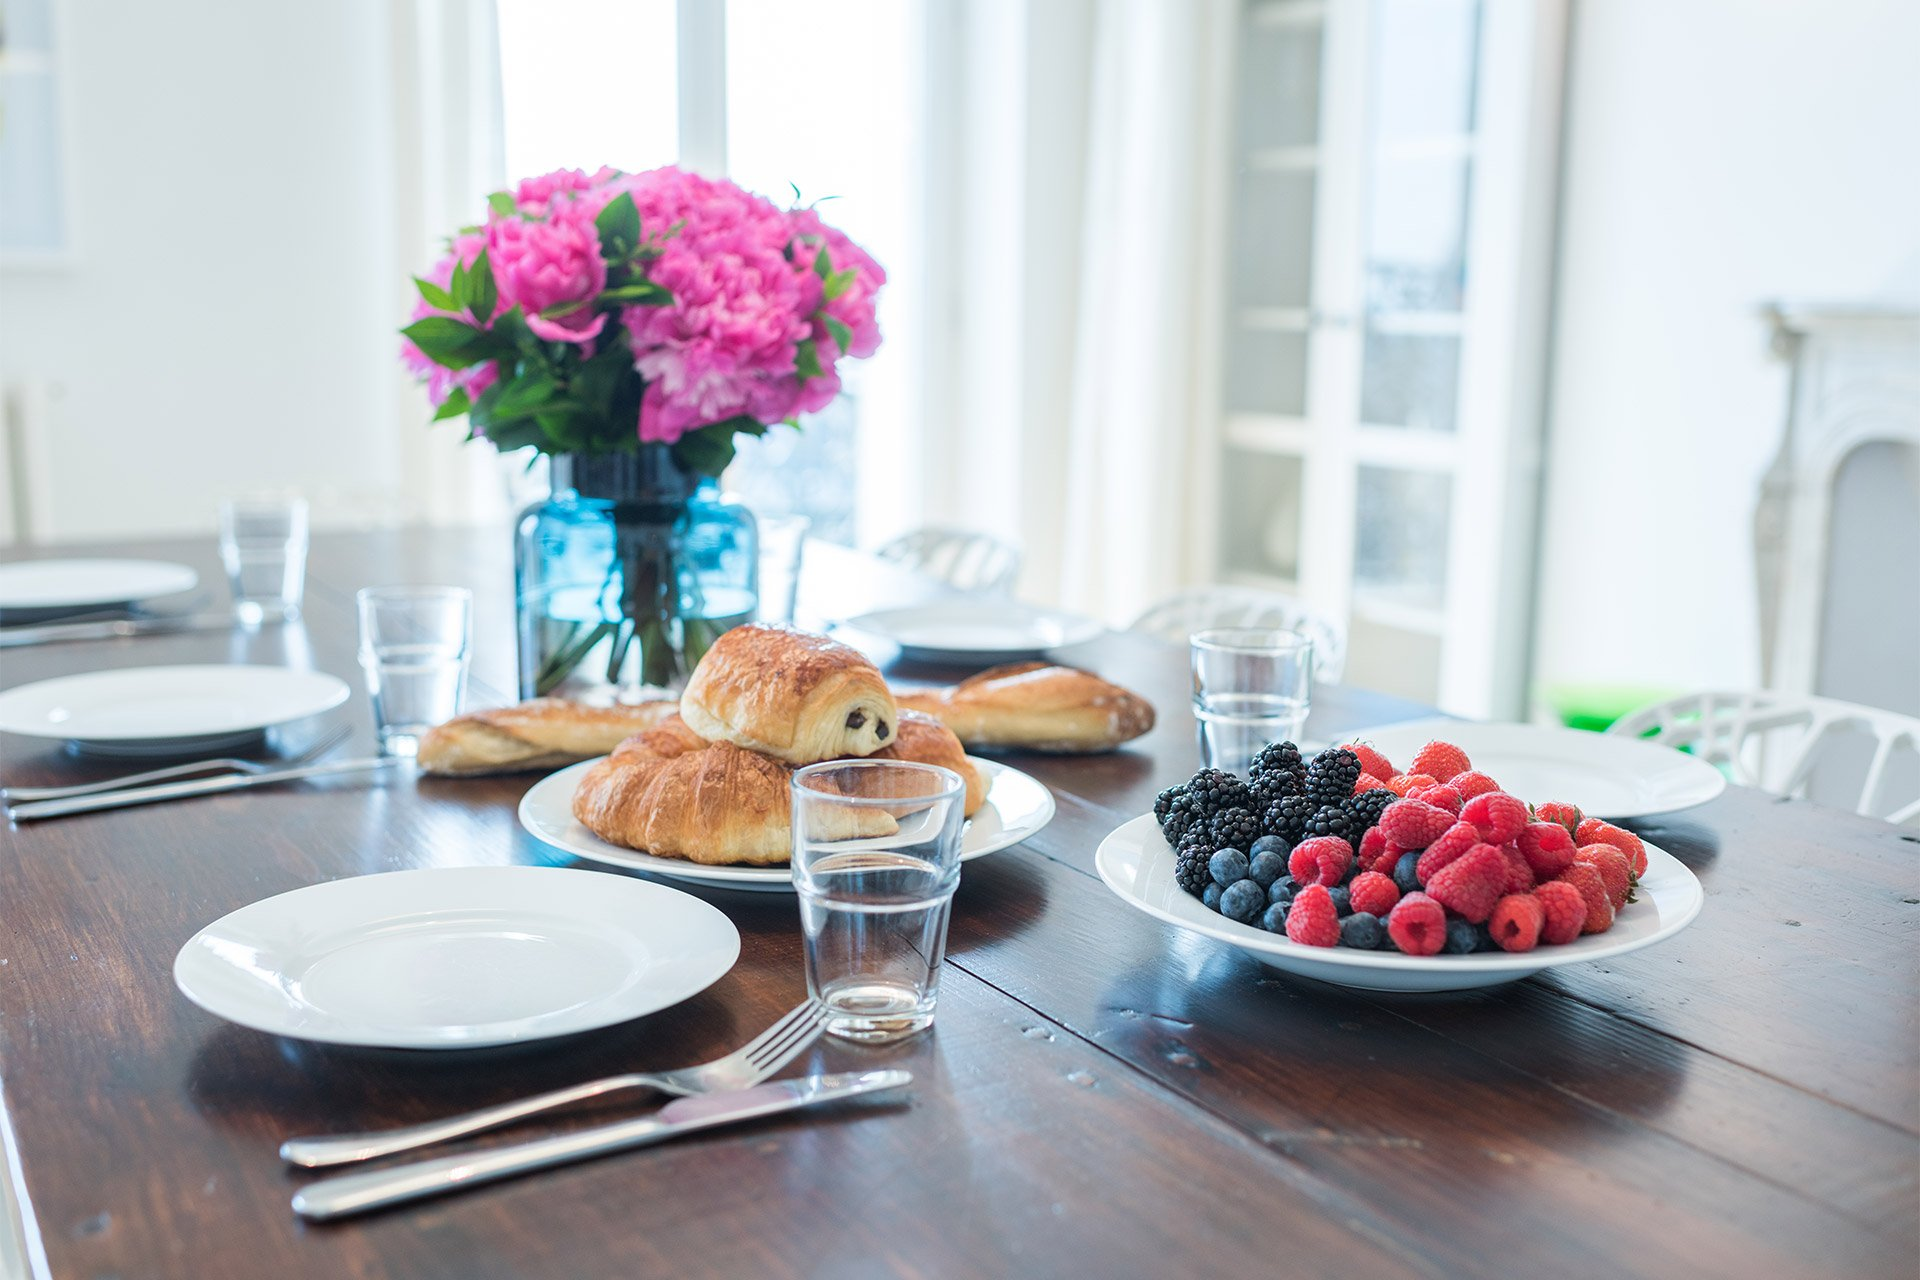 Fresh croissants and fruit in the Mondeuse vacation rental offered by Paris Perfect